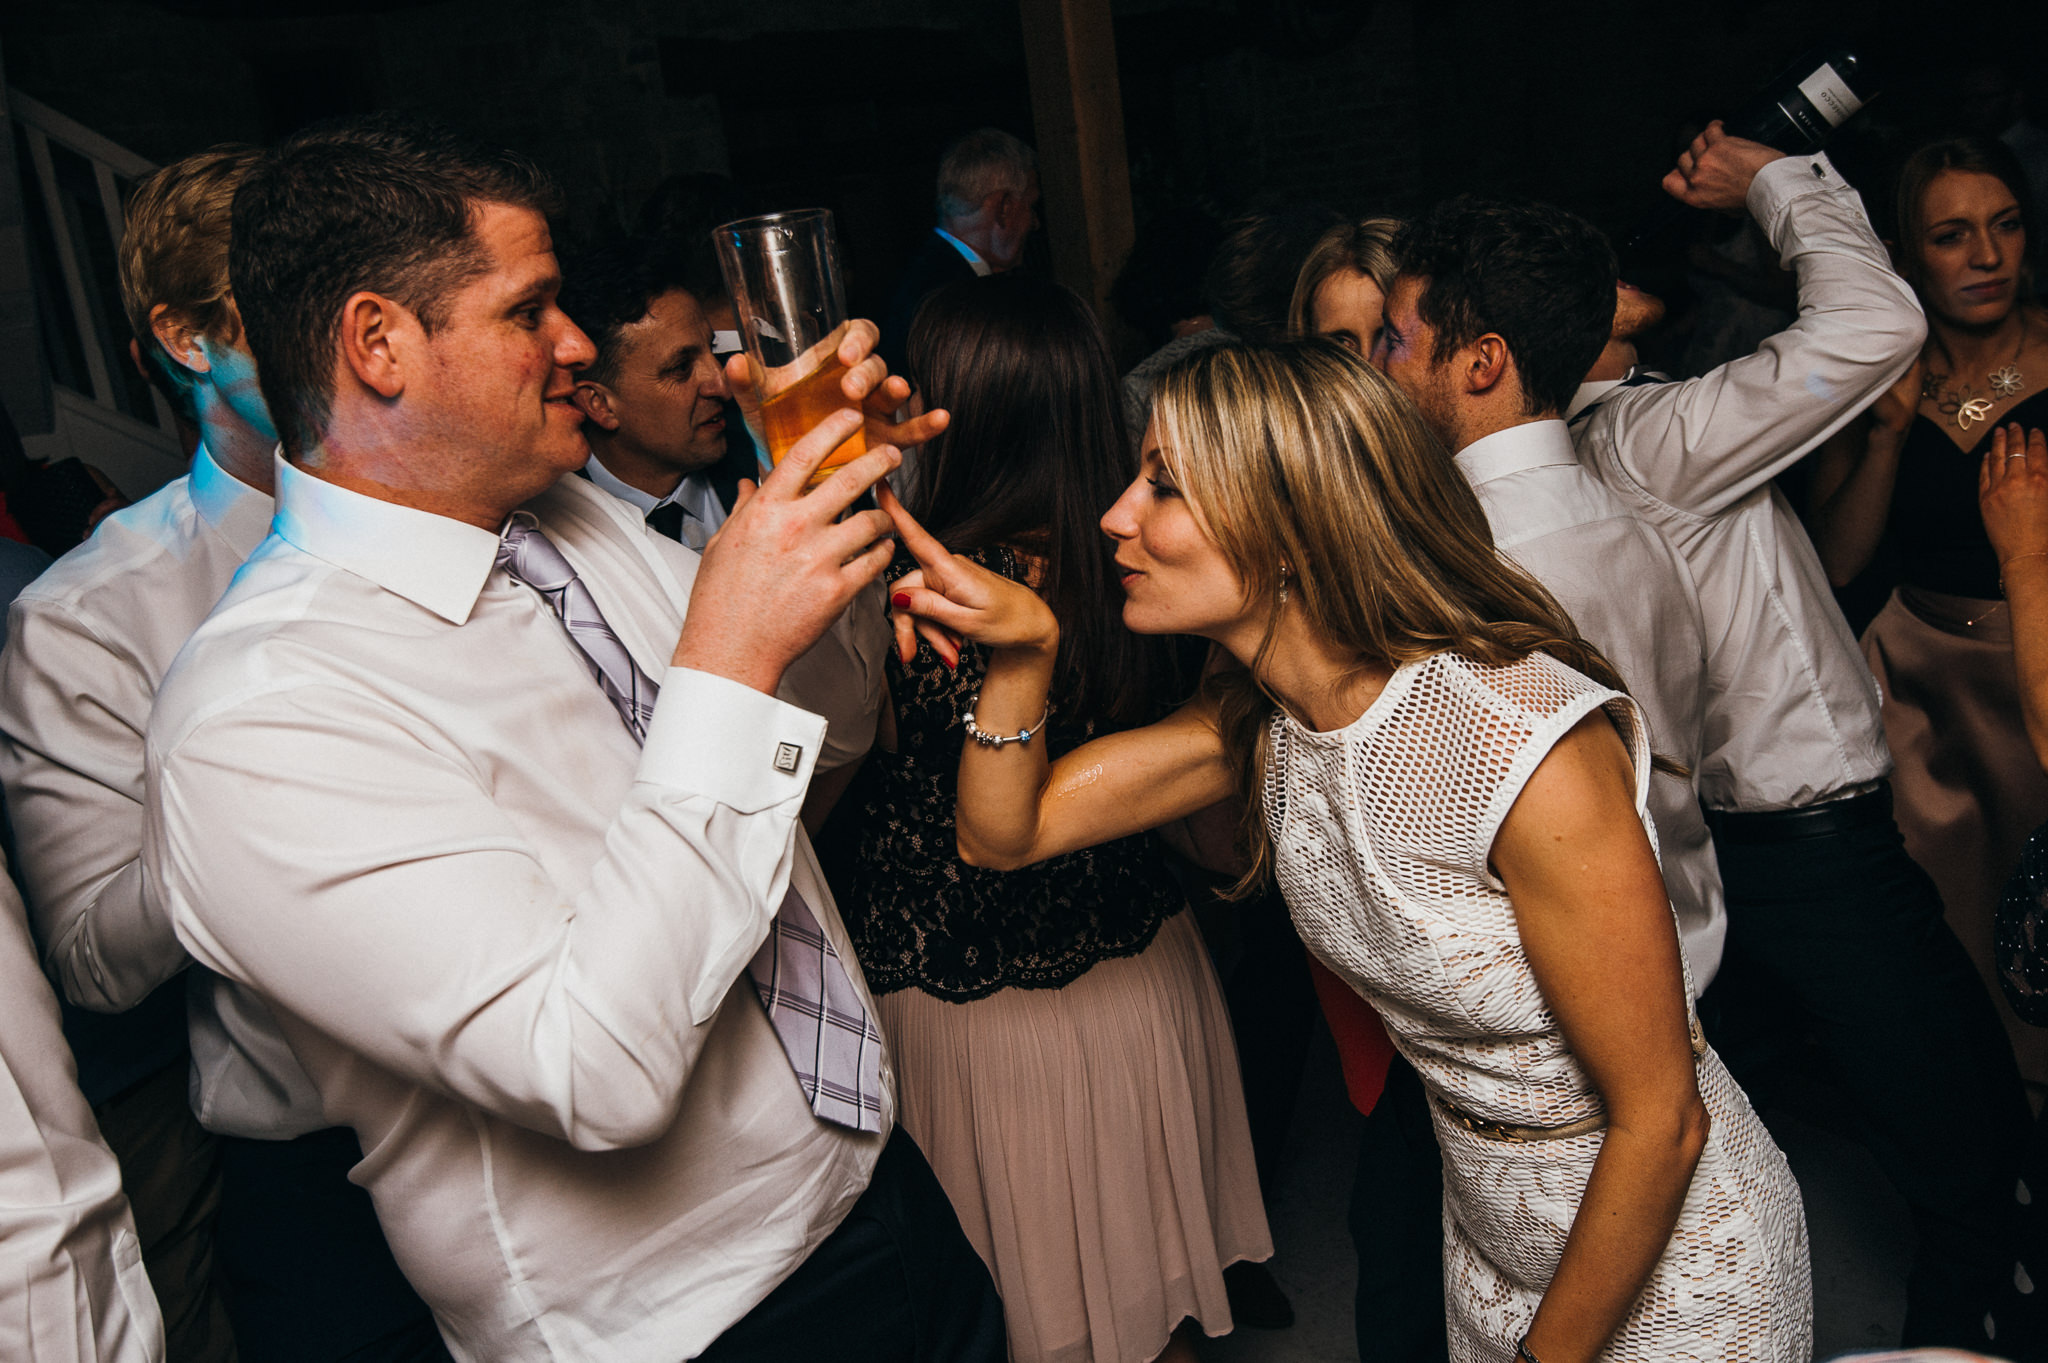 fun times on dance floor at Almonry barn wedding